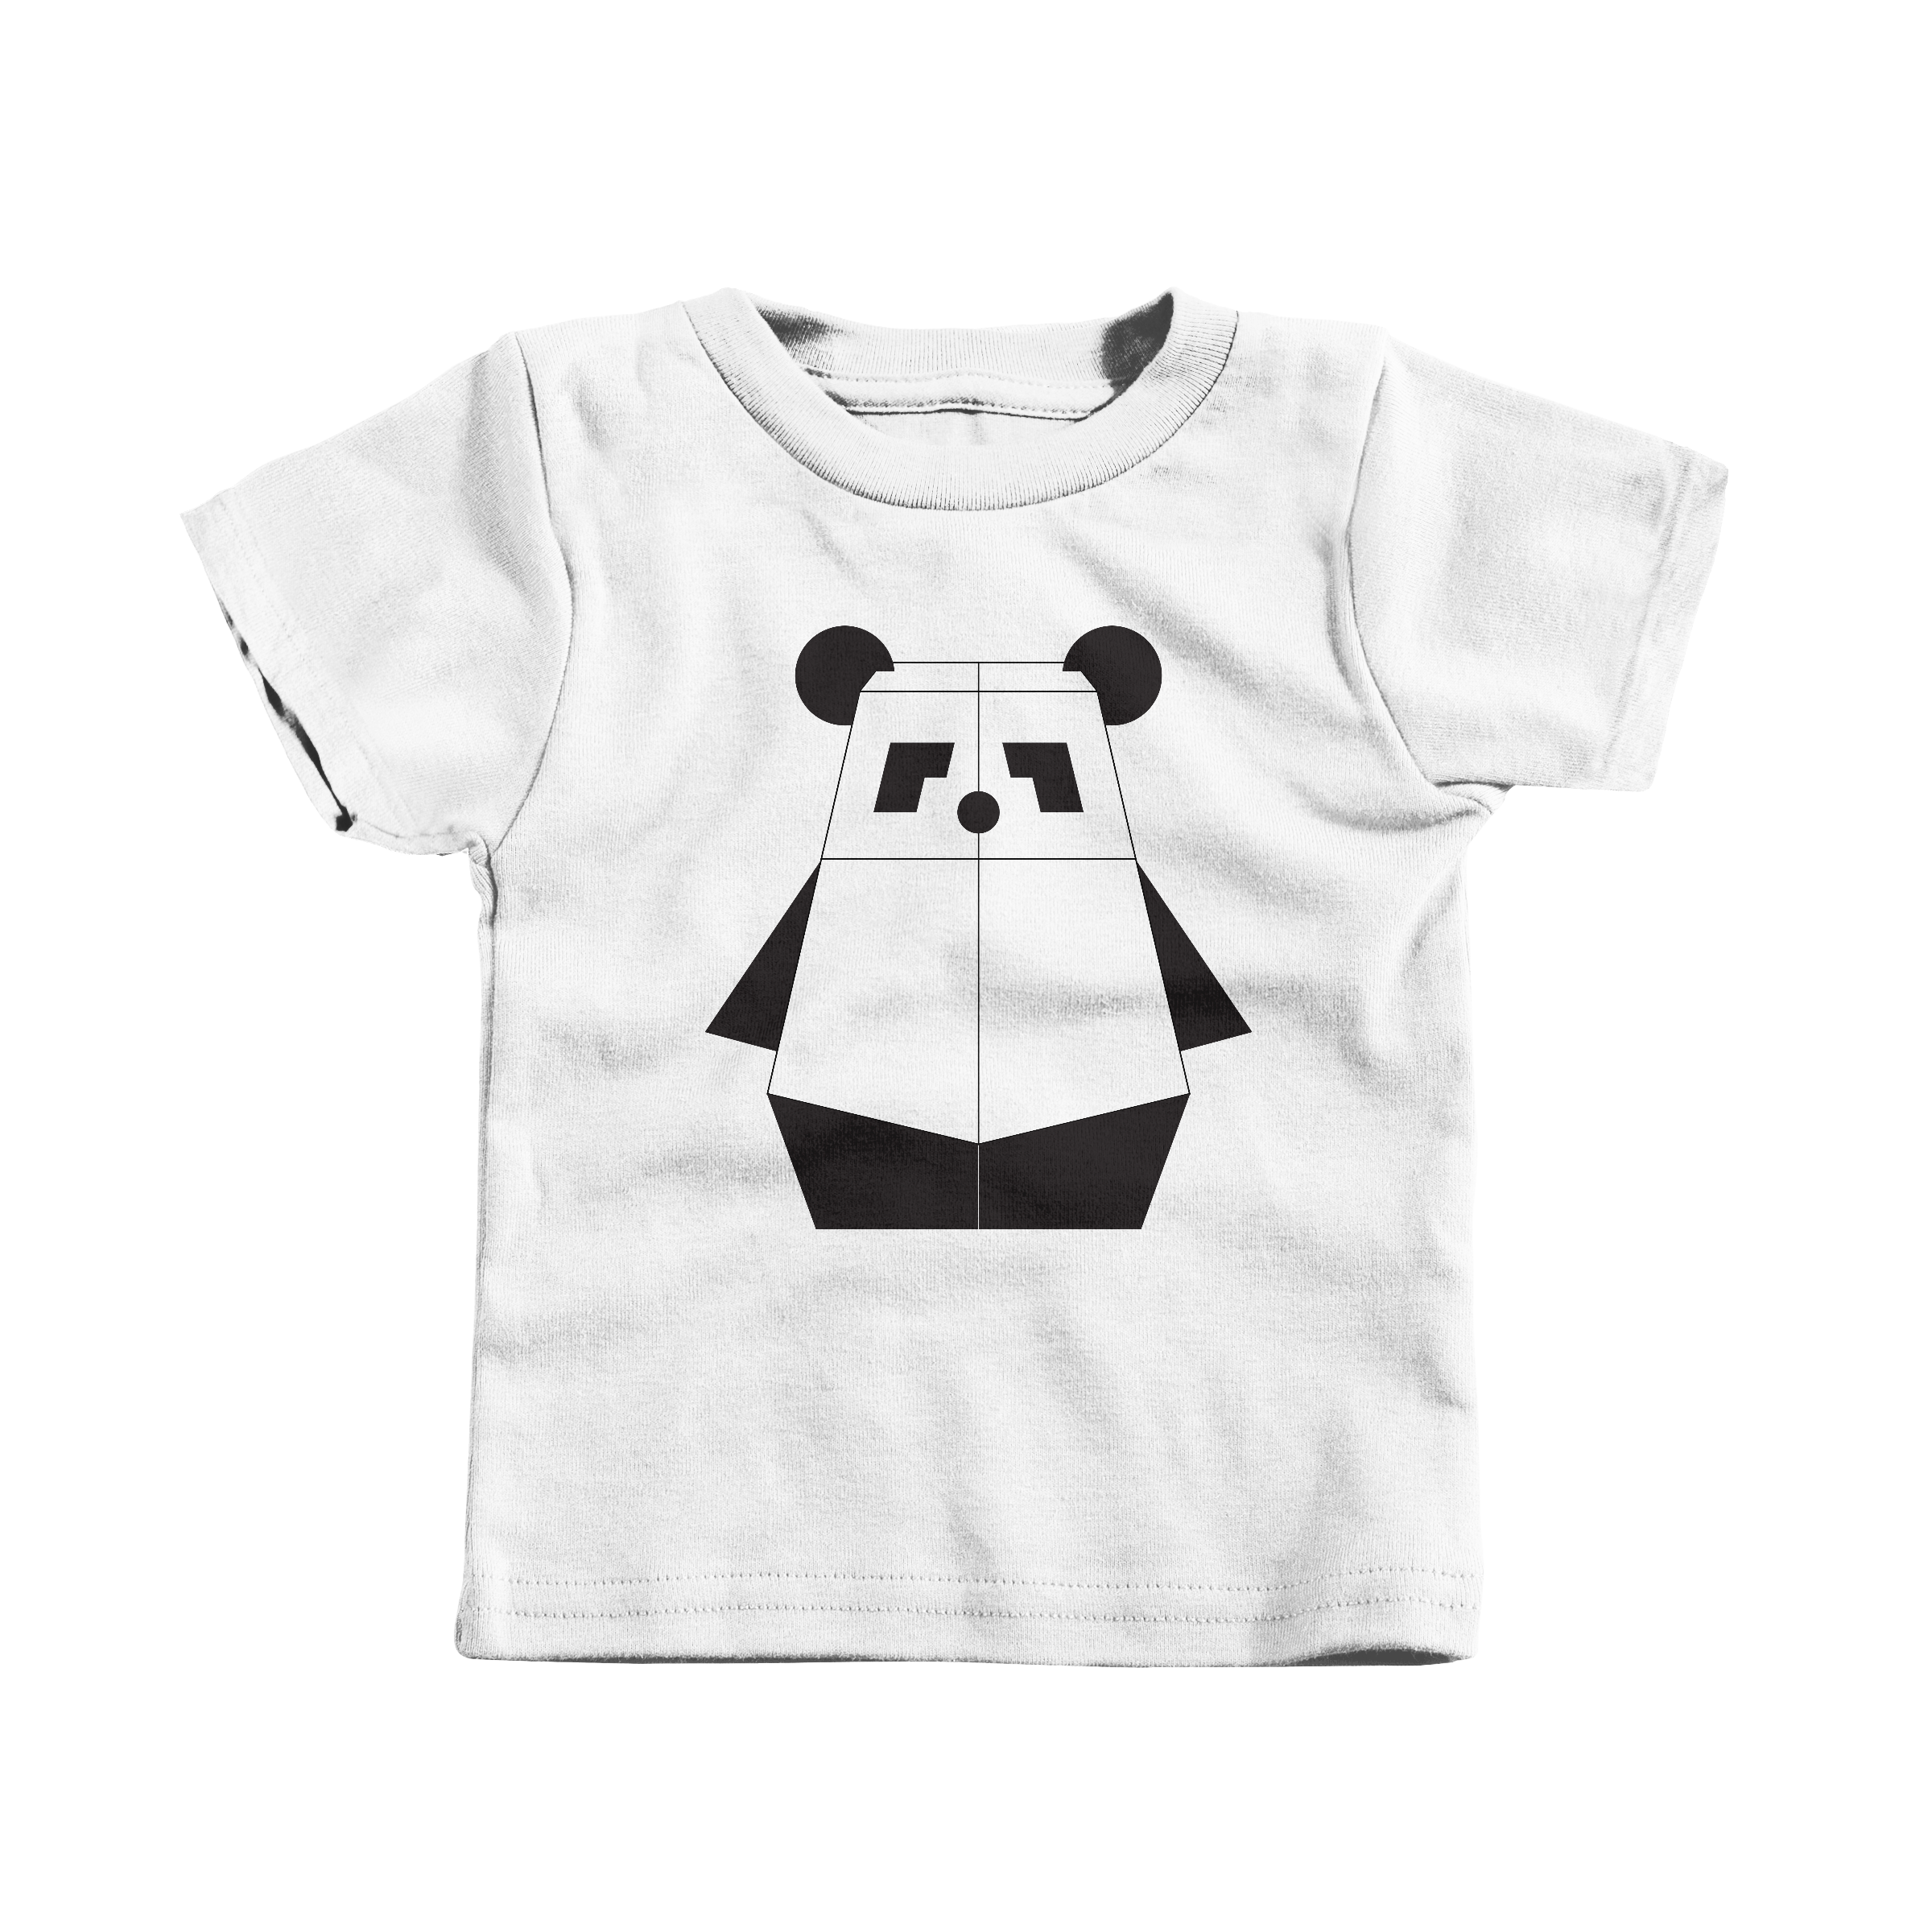 Pandabot White (T-Shirt)